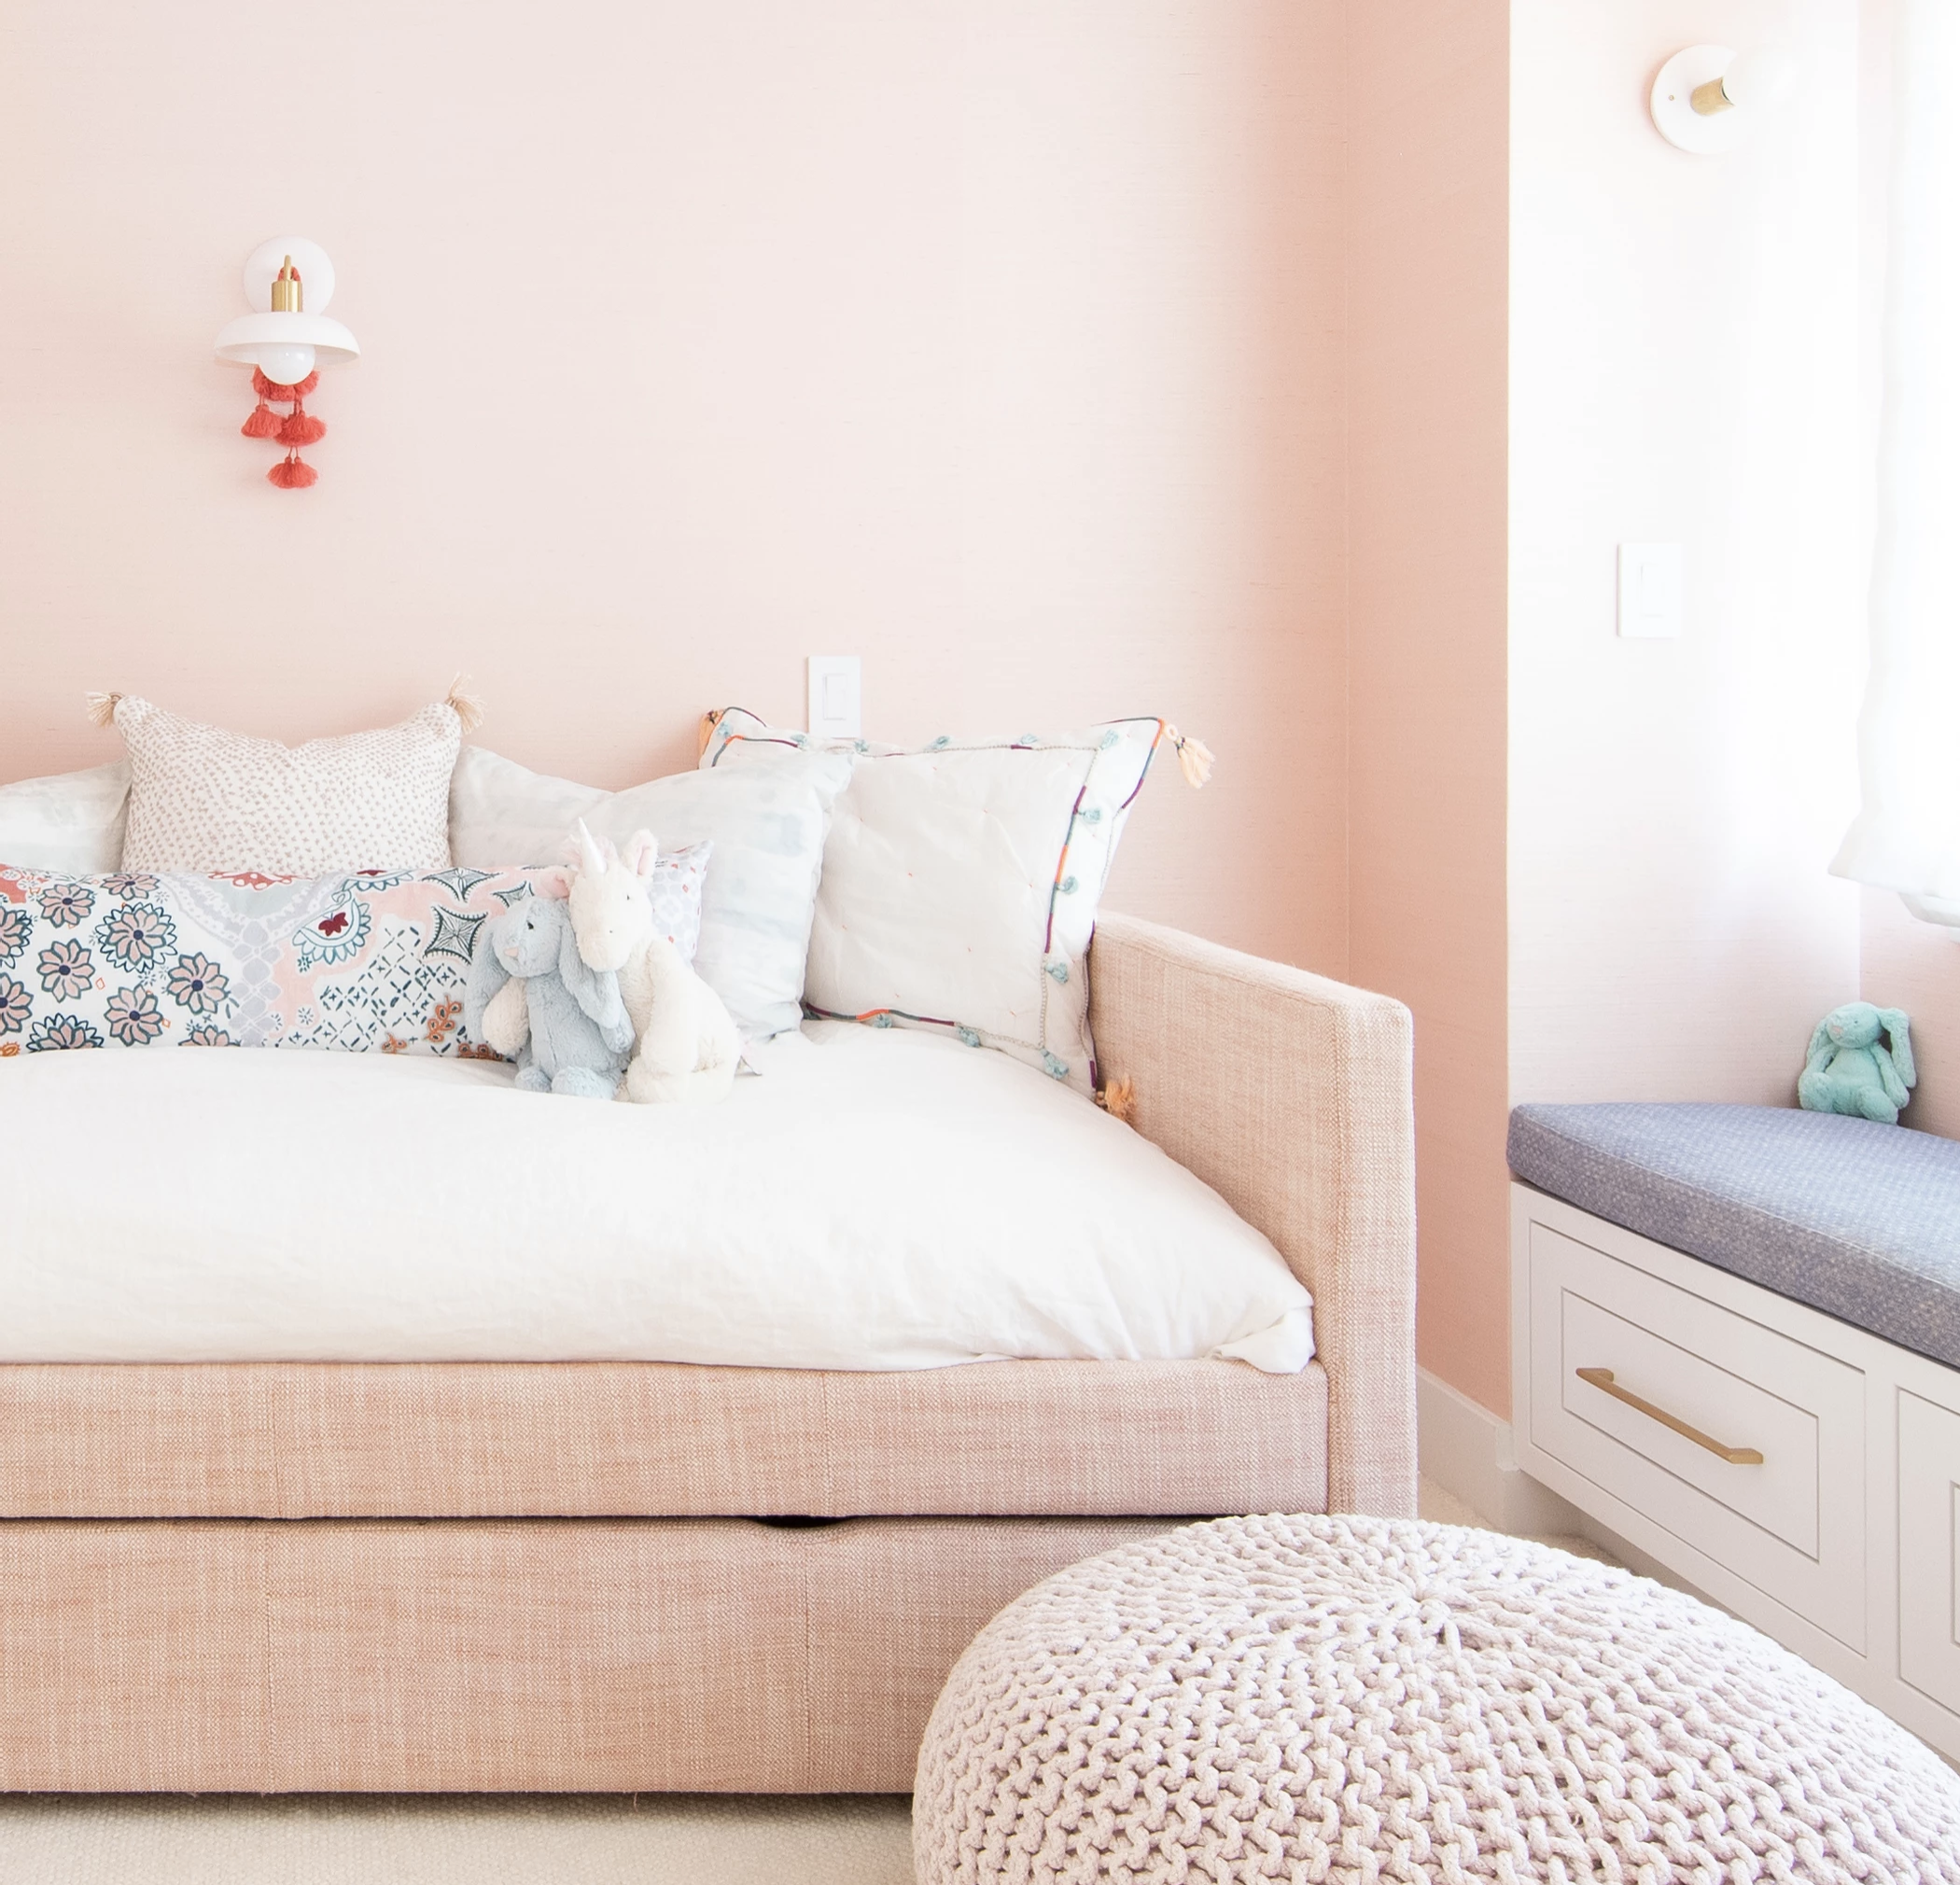 10 Pretty Pink Daybed with Trundle Options - pink daybed inspiration, Image via G Family Inc.